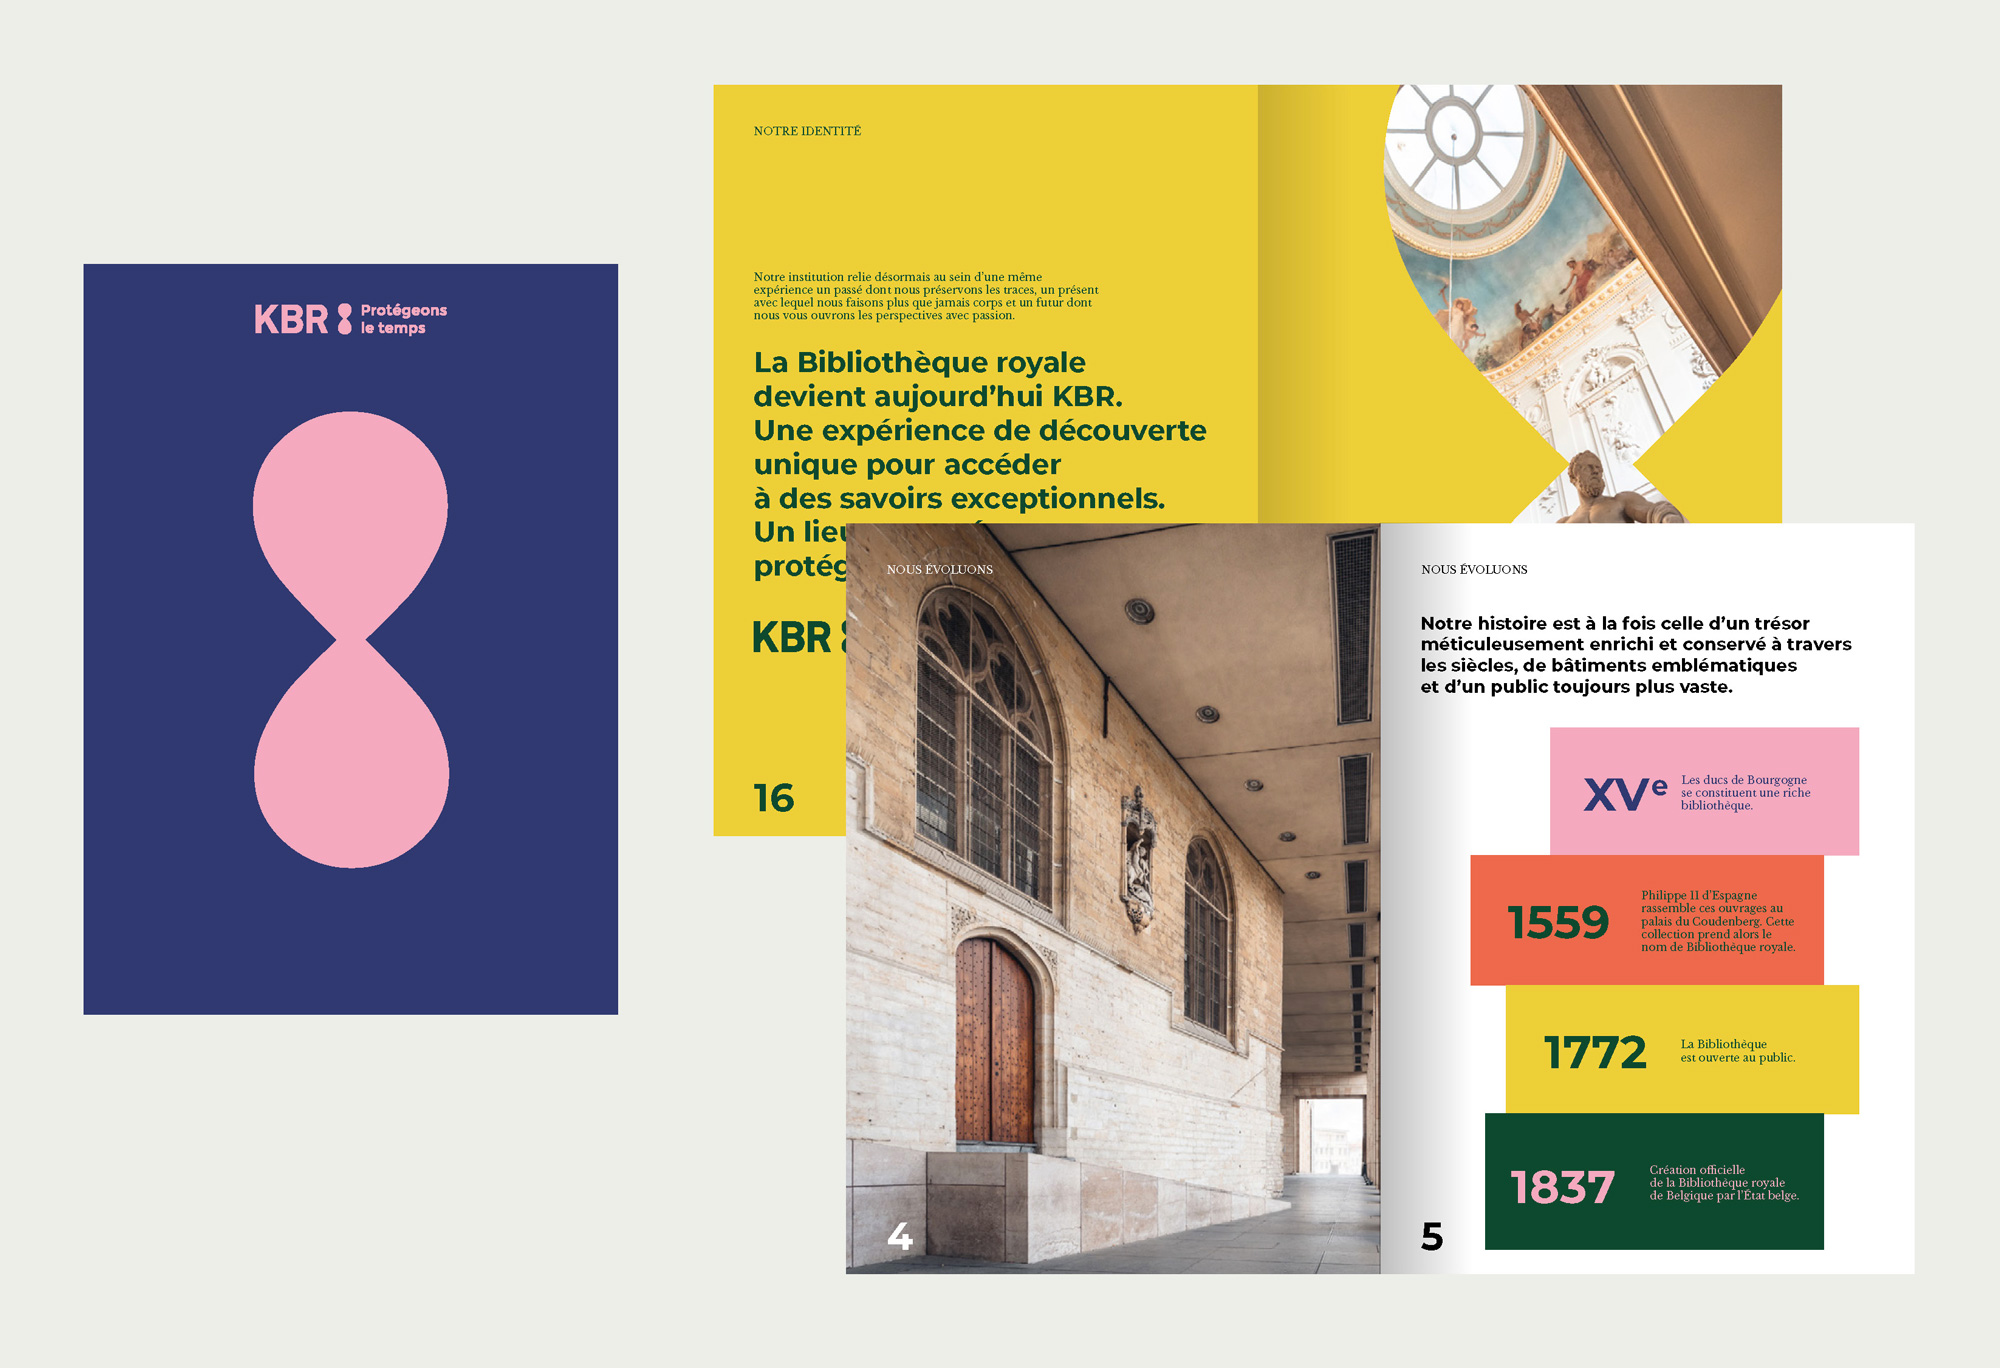 New Logo and Identity for KBR by Teamm, Dyncomm, and Oilinwater